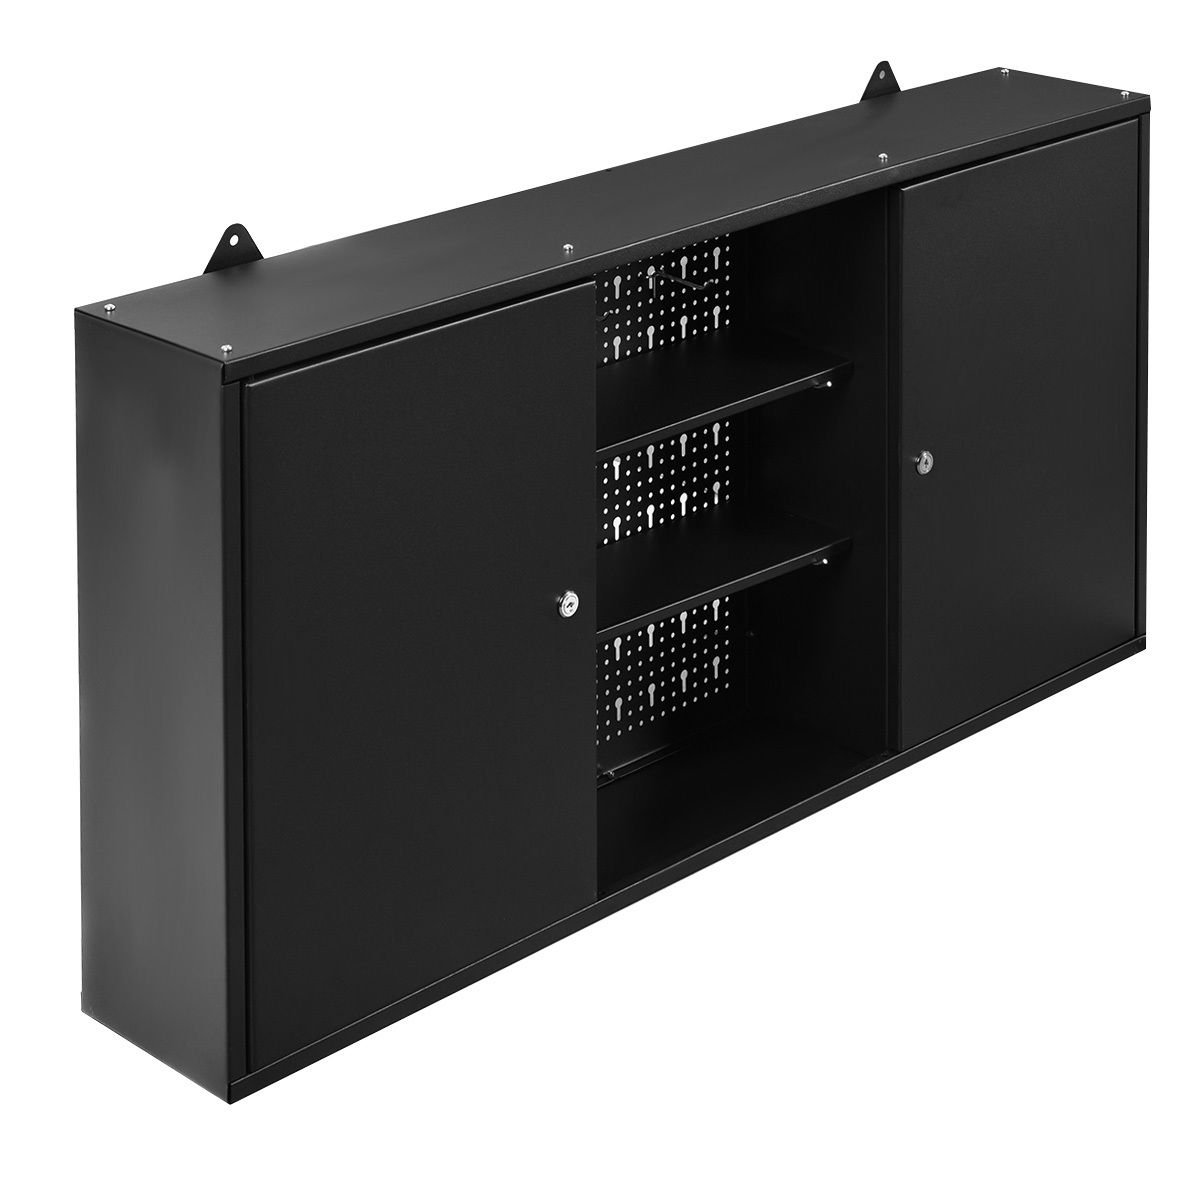 New Black Wall Mount Hanging Tool Box Storage Cabinet Lock Home Office Garage